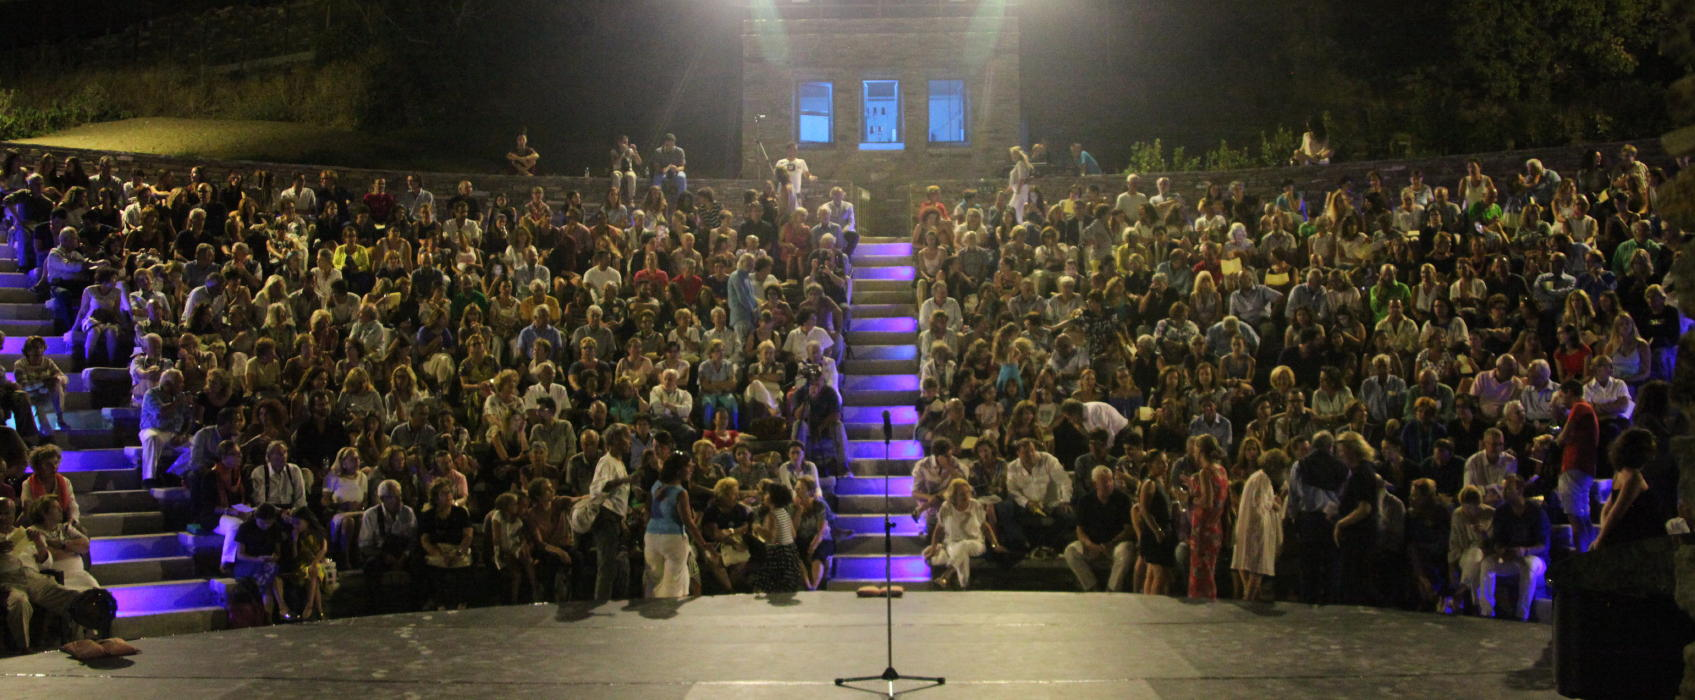 music and dance gala 2nd androsfestival androsfilm vanglouk 21 aug 2016 (a) (4)